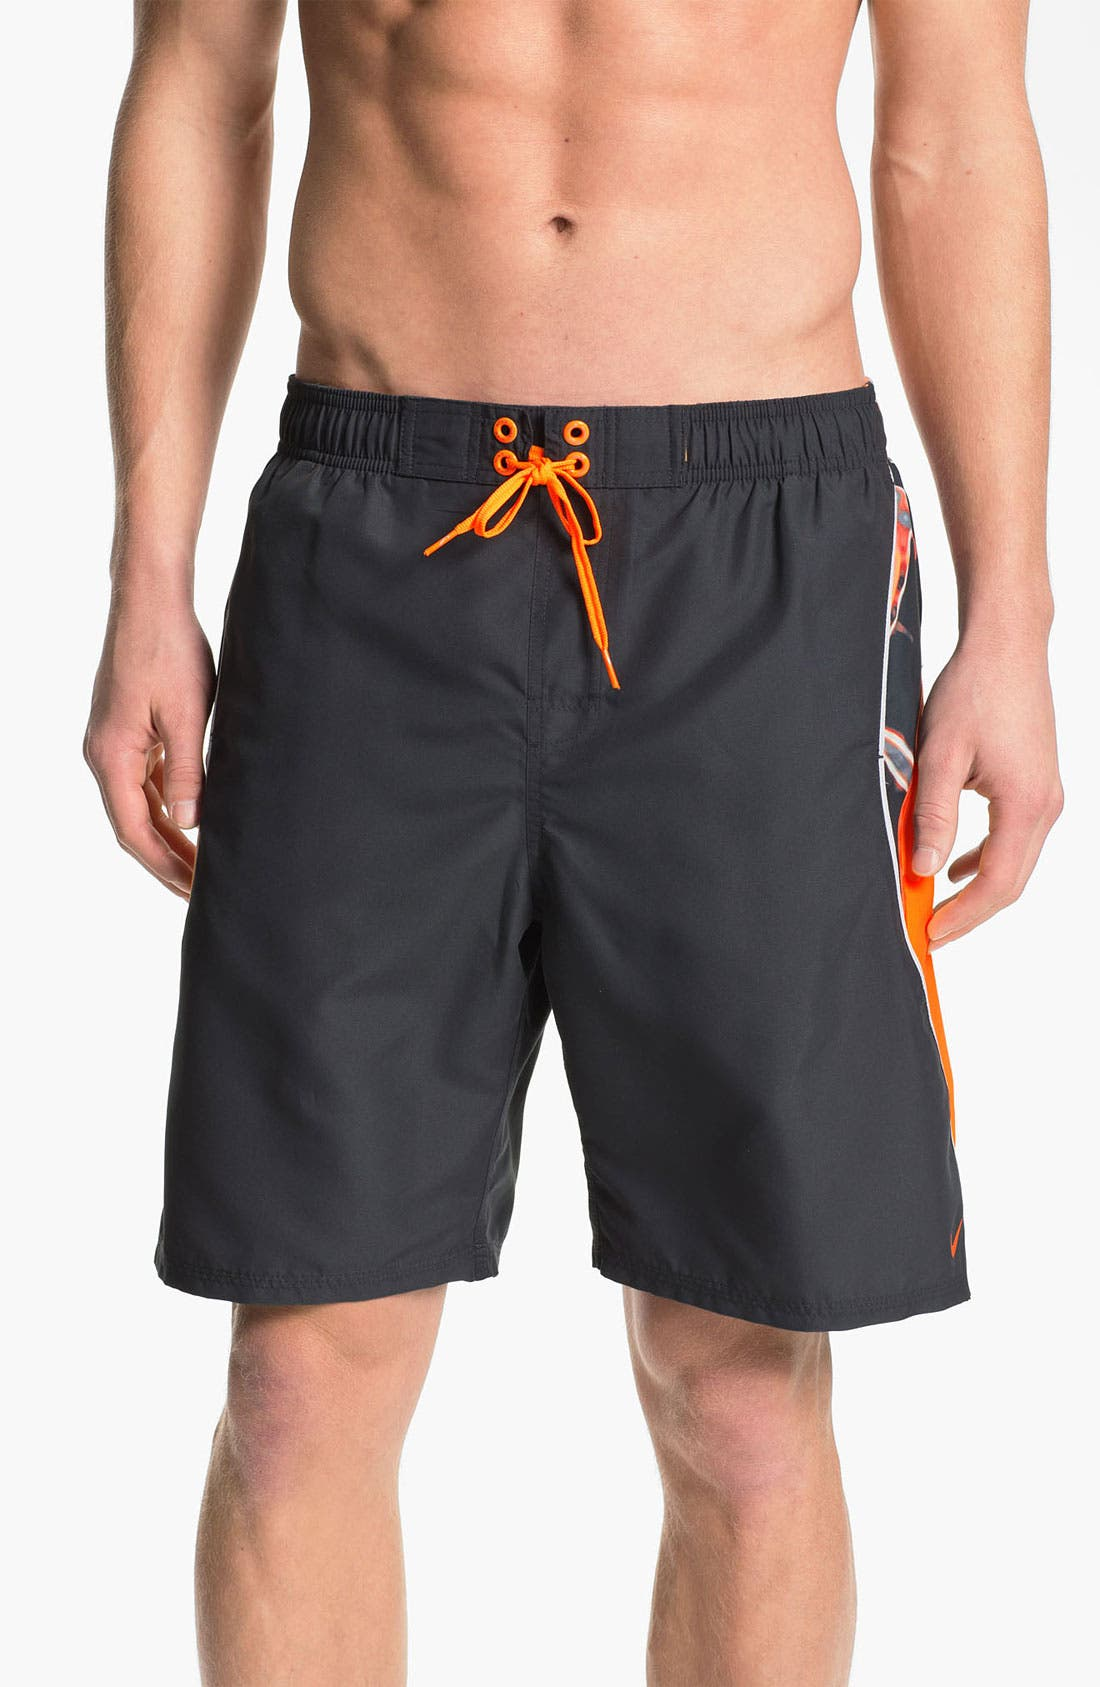 Alternate Image 1 Selected - Nike 'Data Board Splice' Volley Shorts